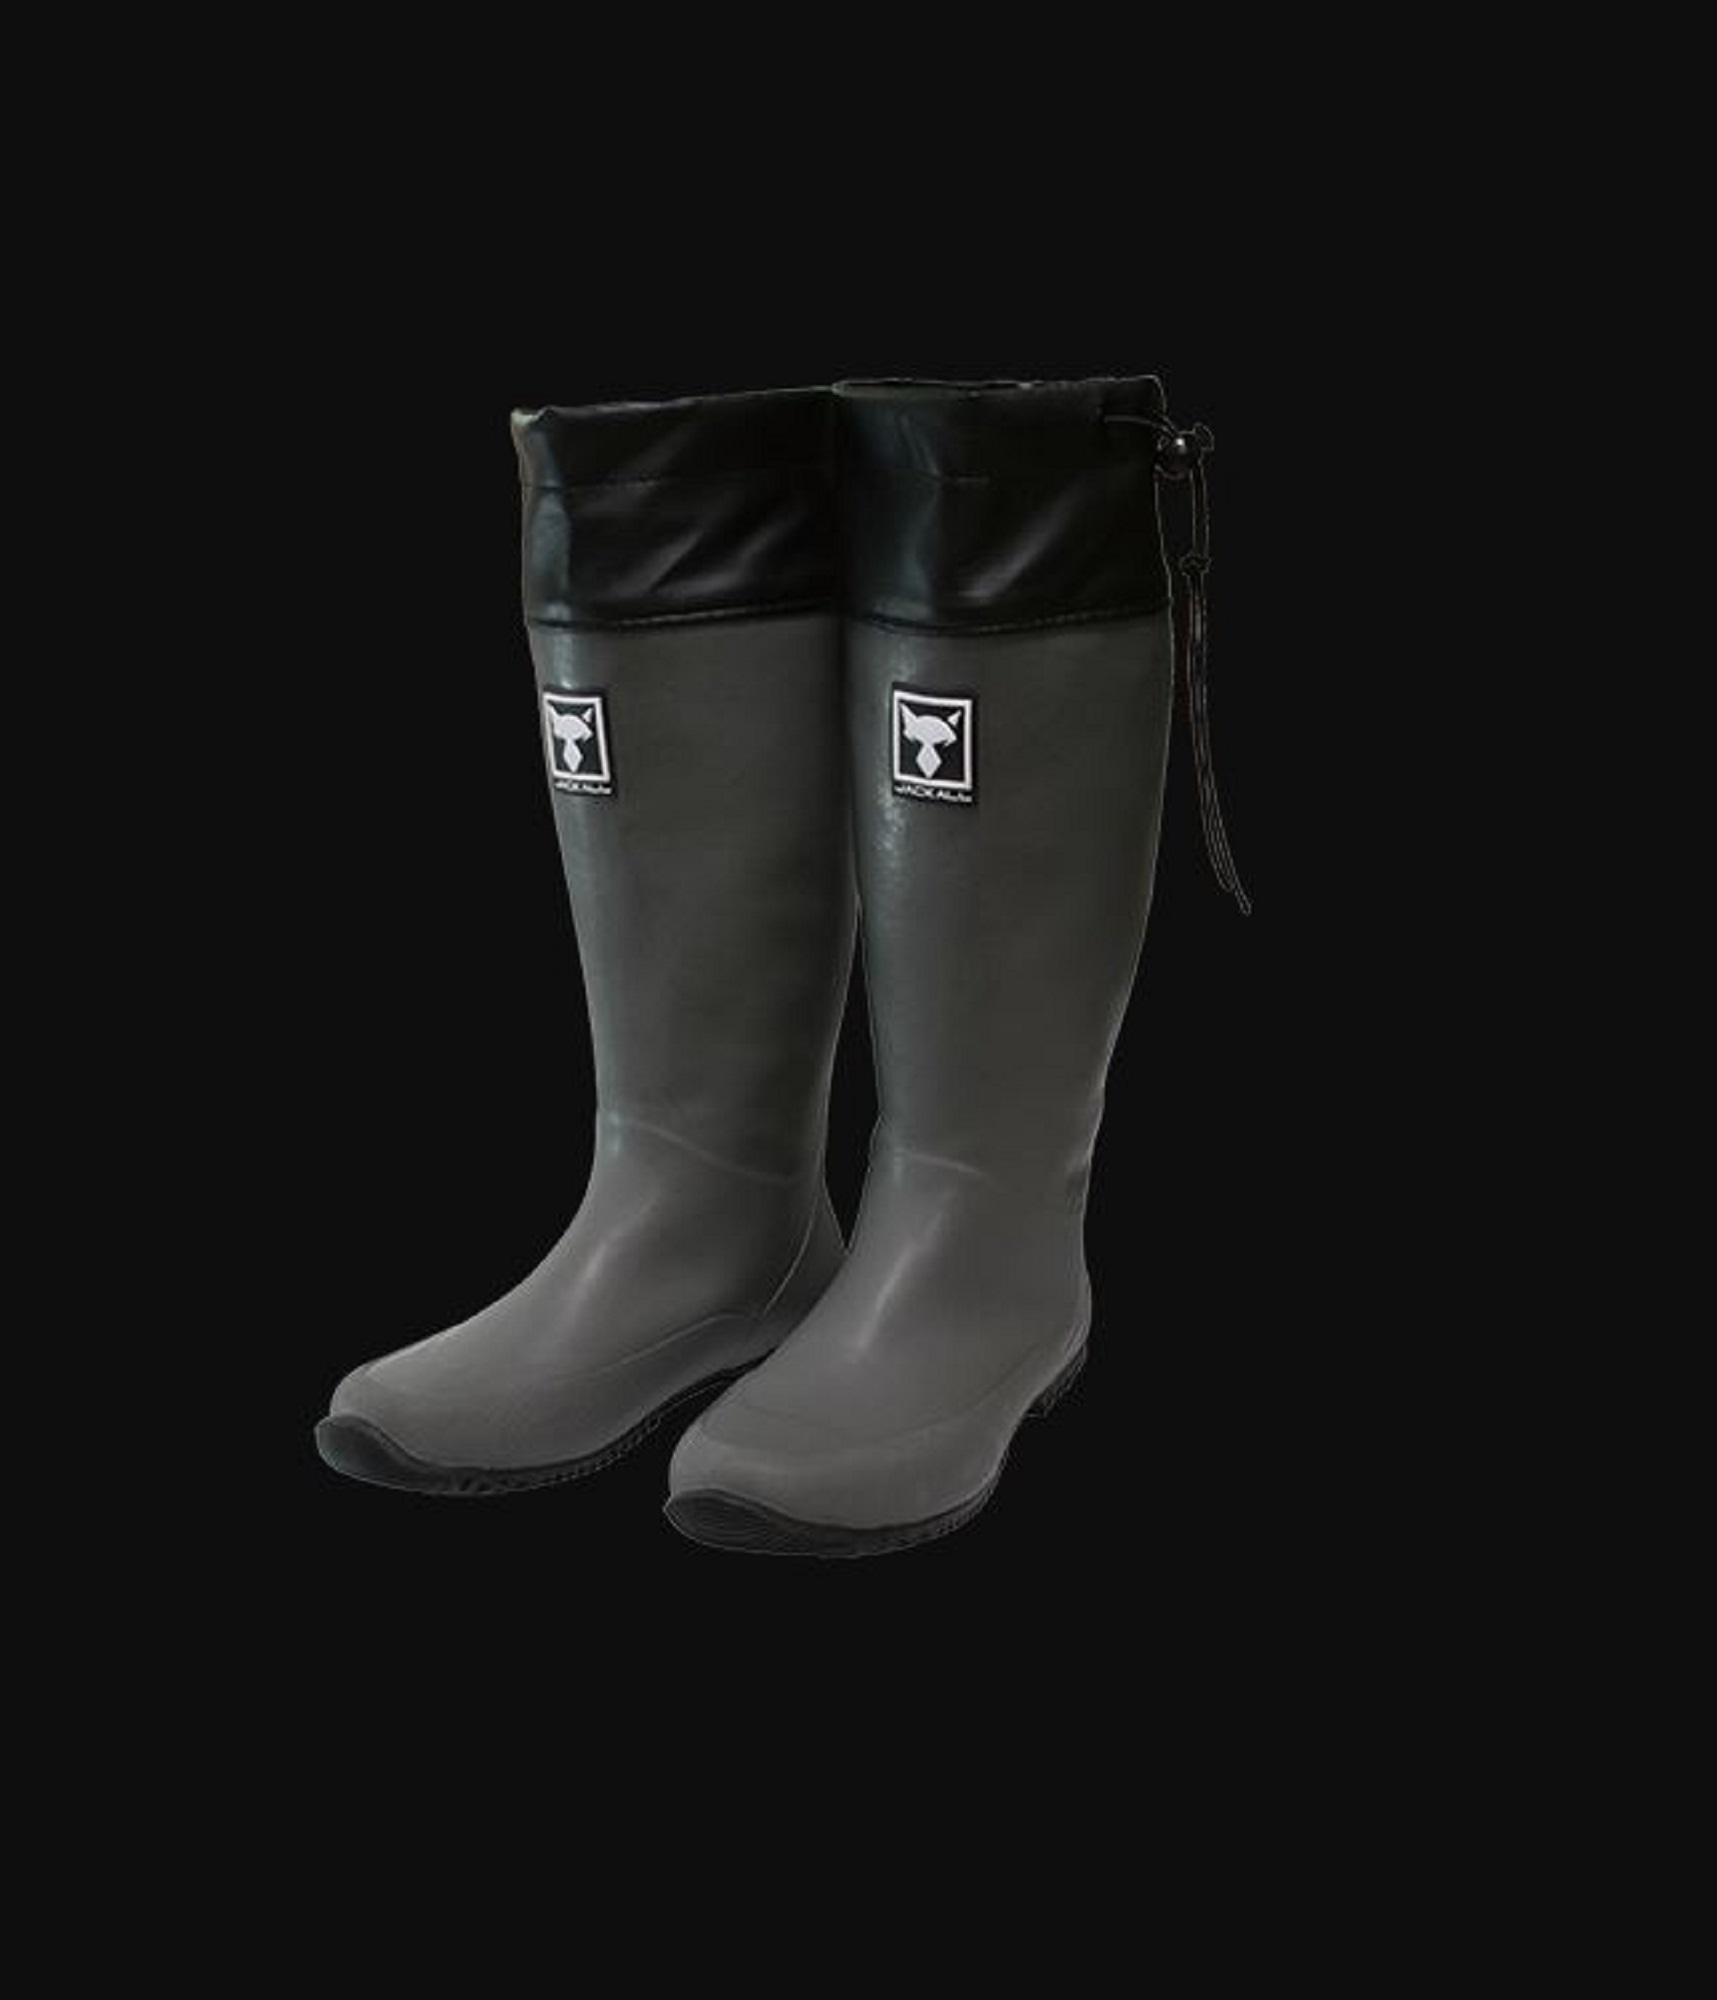 Jackall Packable Boots Foldable Gray Size L 260-265 (2149)